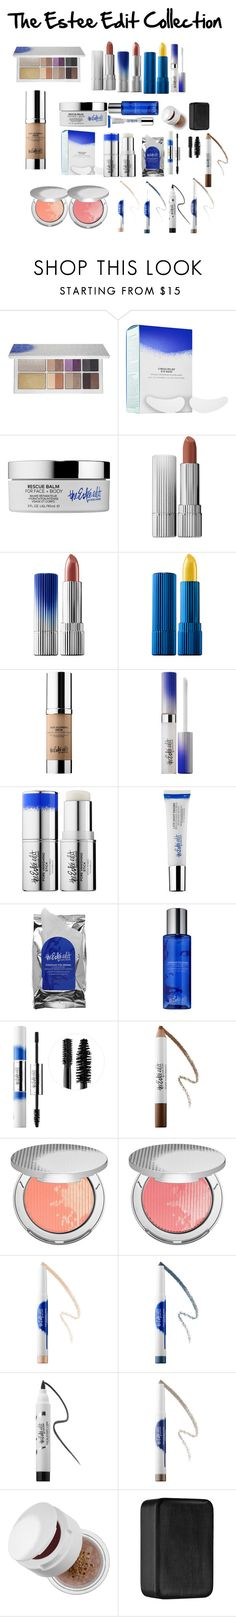 """The Estee Edit Collection"" by minadinamike ❤ liked on Polyvore featuring schoonheid en Estée Lauder"